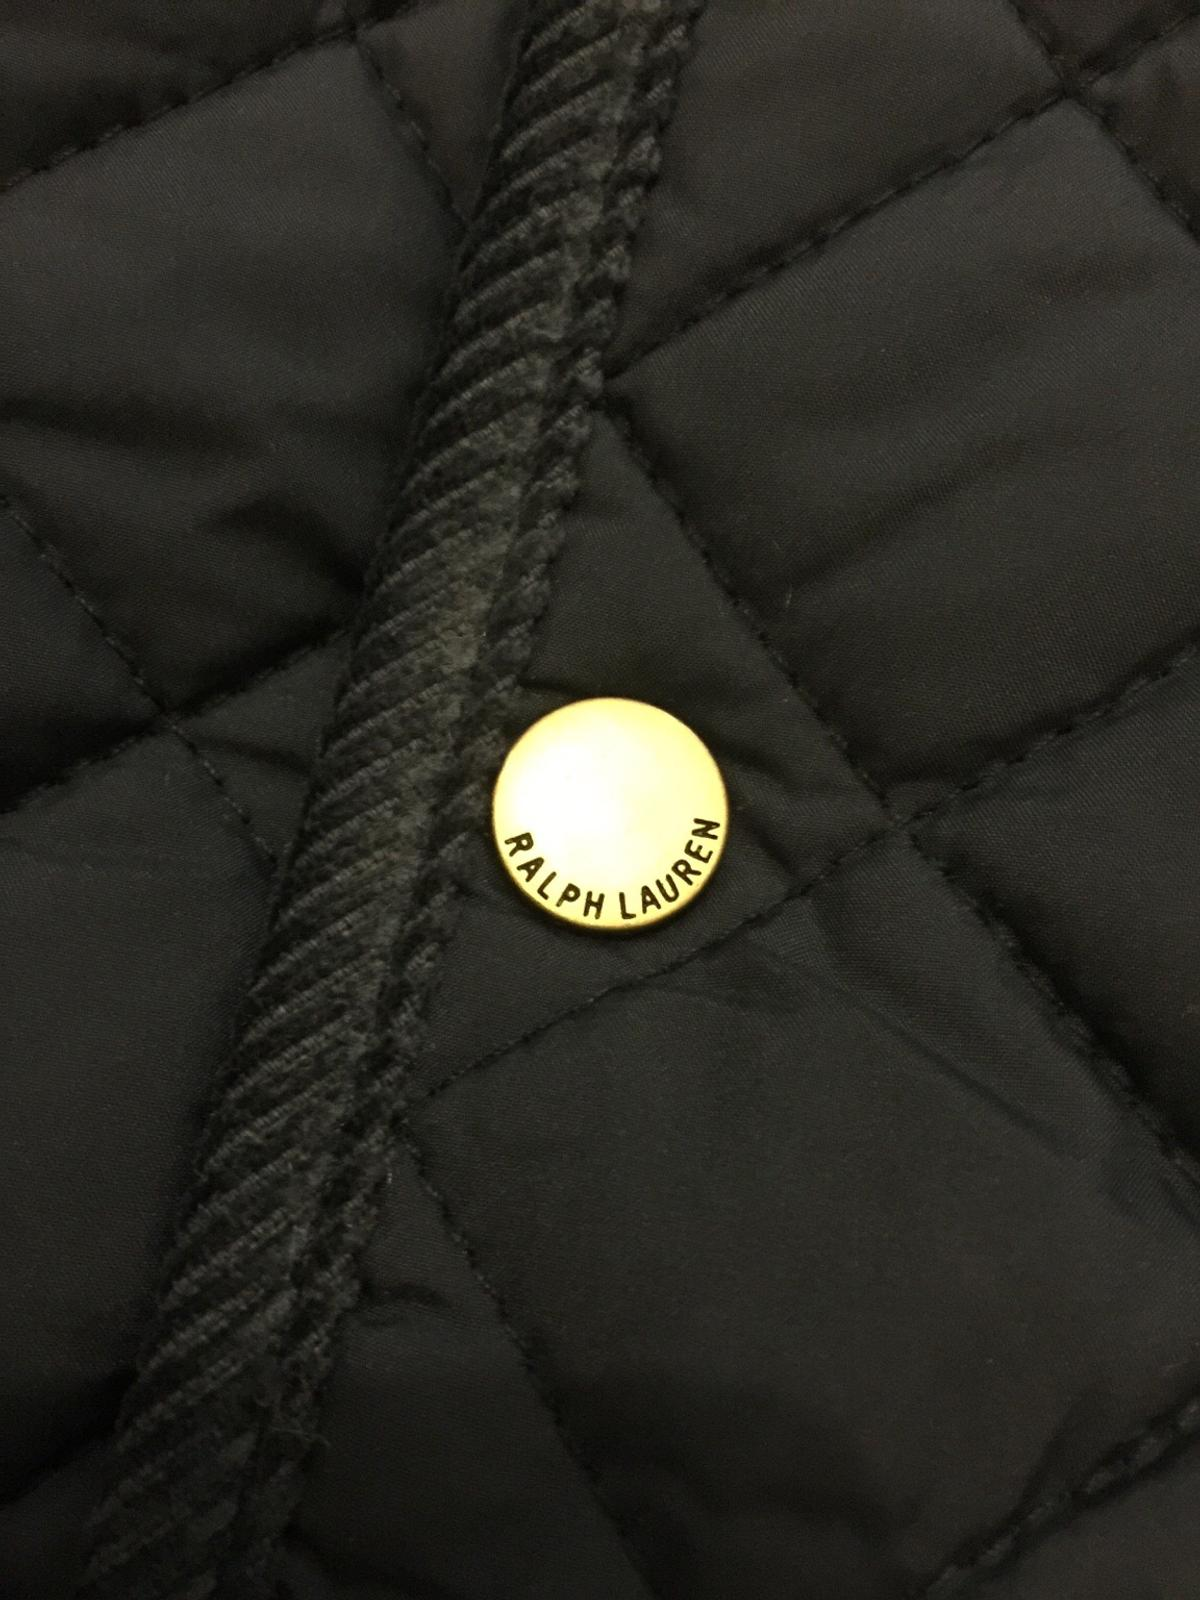 6346d992a Ralph Lauren quilted navy snowsuit 6M SALE in MK12 Greenleys for ...